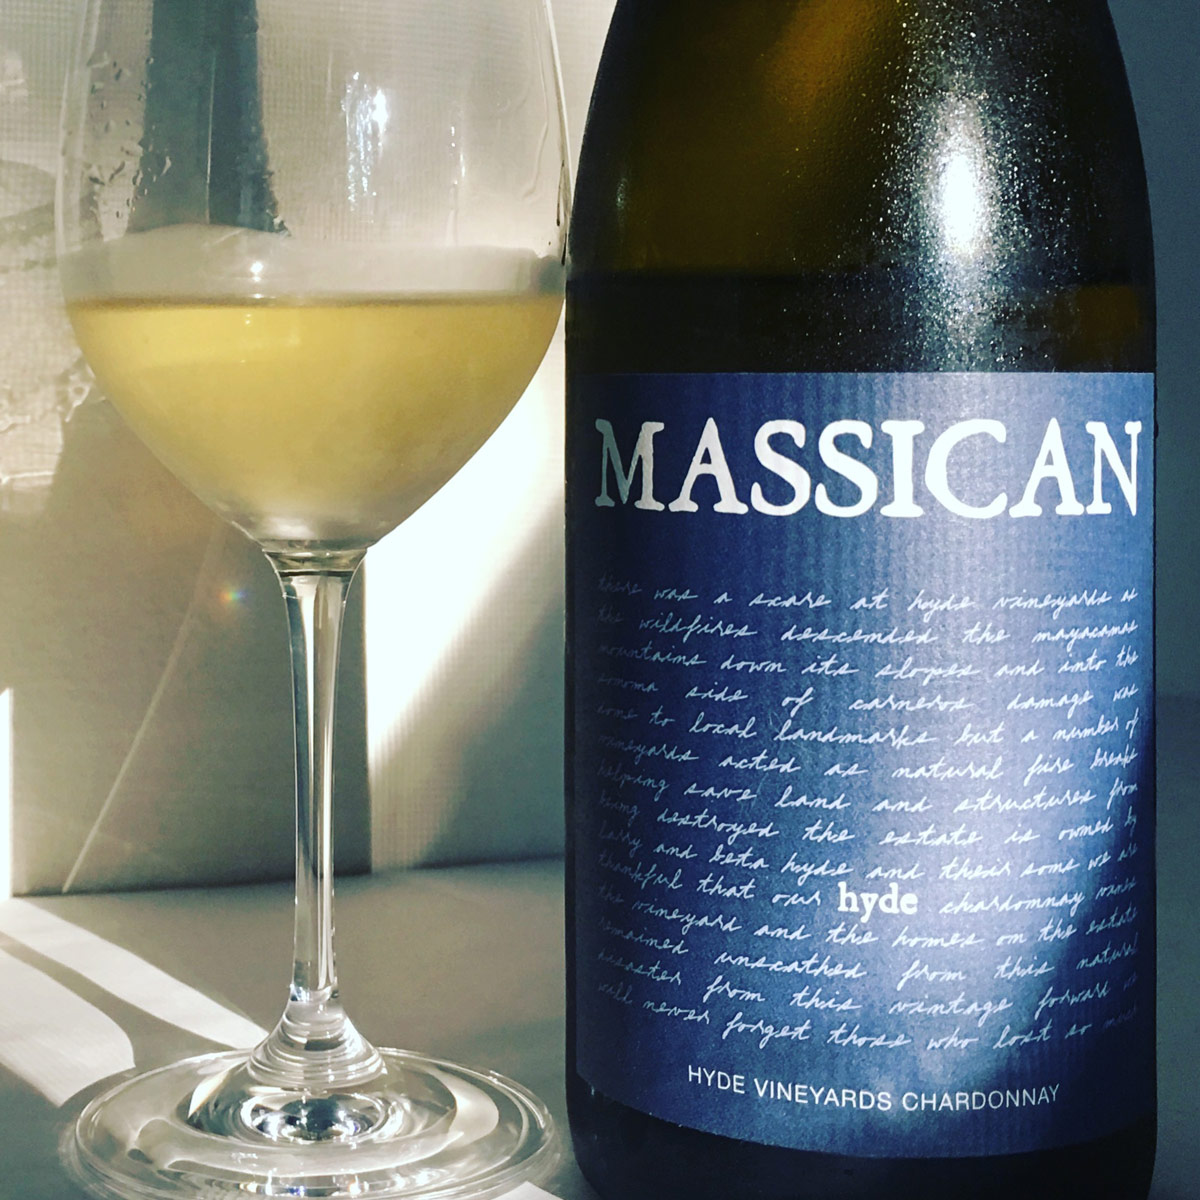 2017 Massican Chardonnay Hyde Vineyard Napa Valley